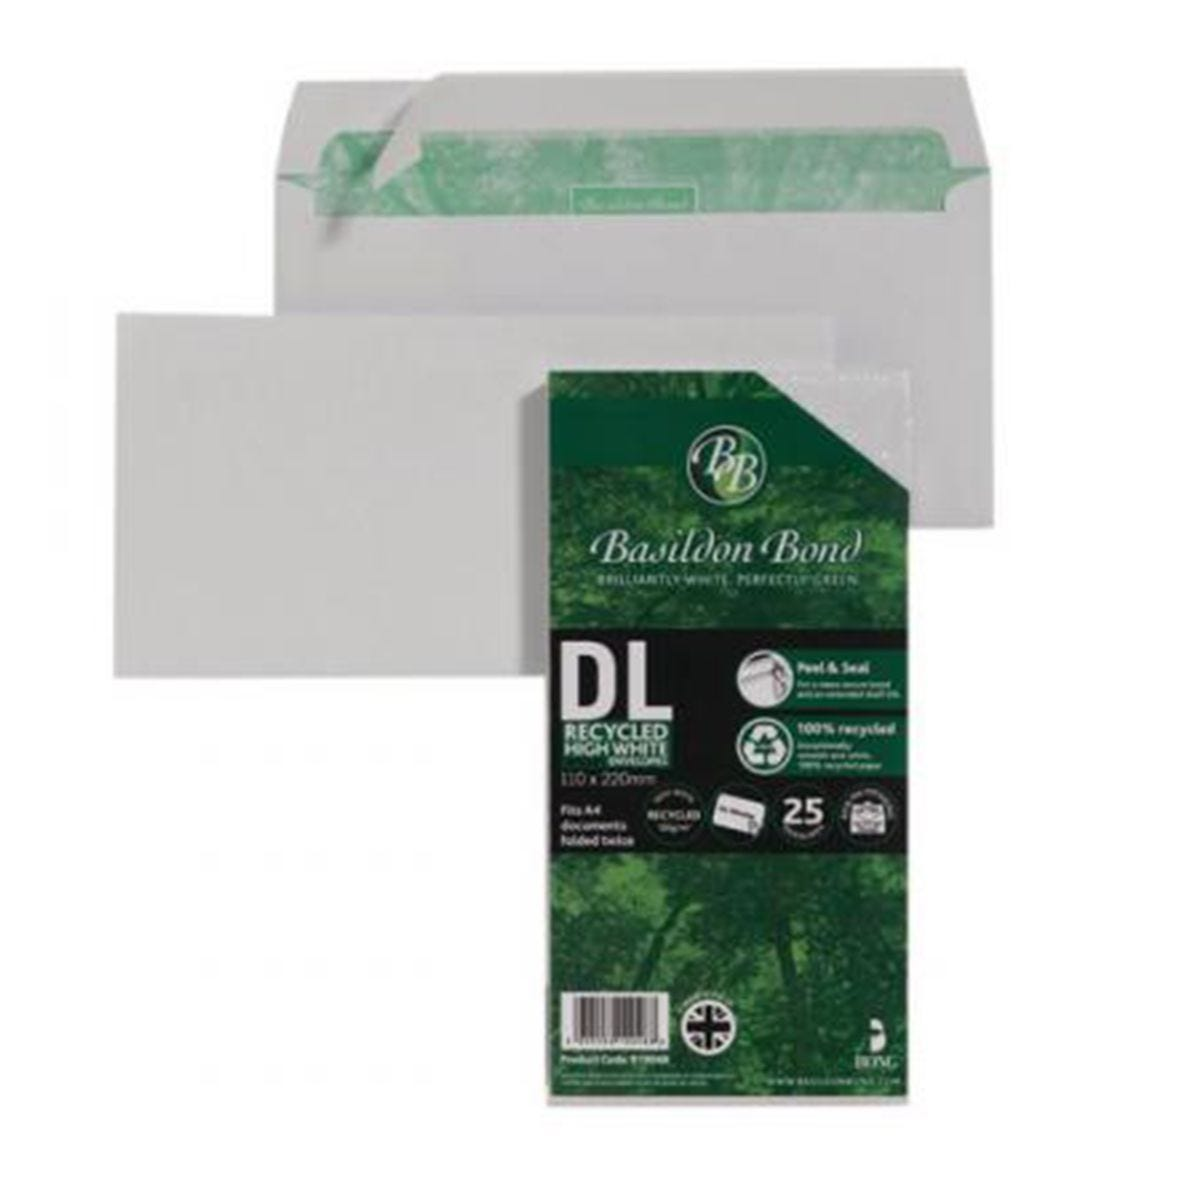 Basildon Bond DL 120gsm Peel and Seal Recycled Plain Envelope White - Pack of 25